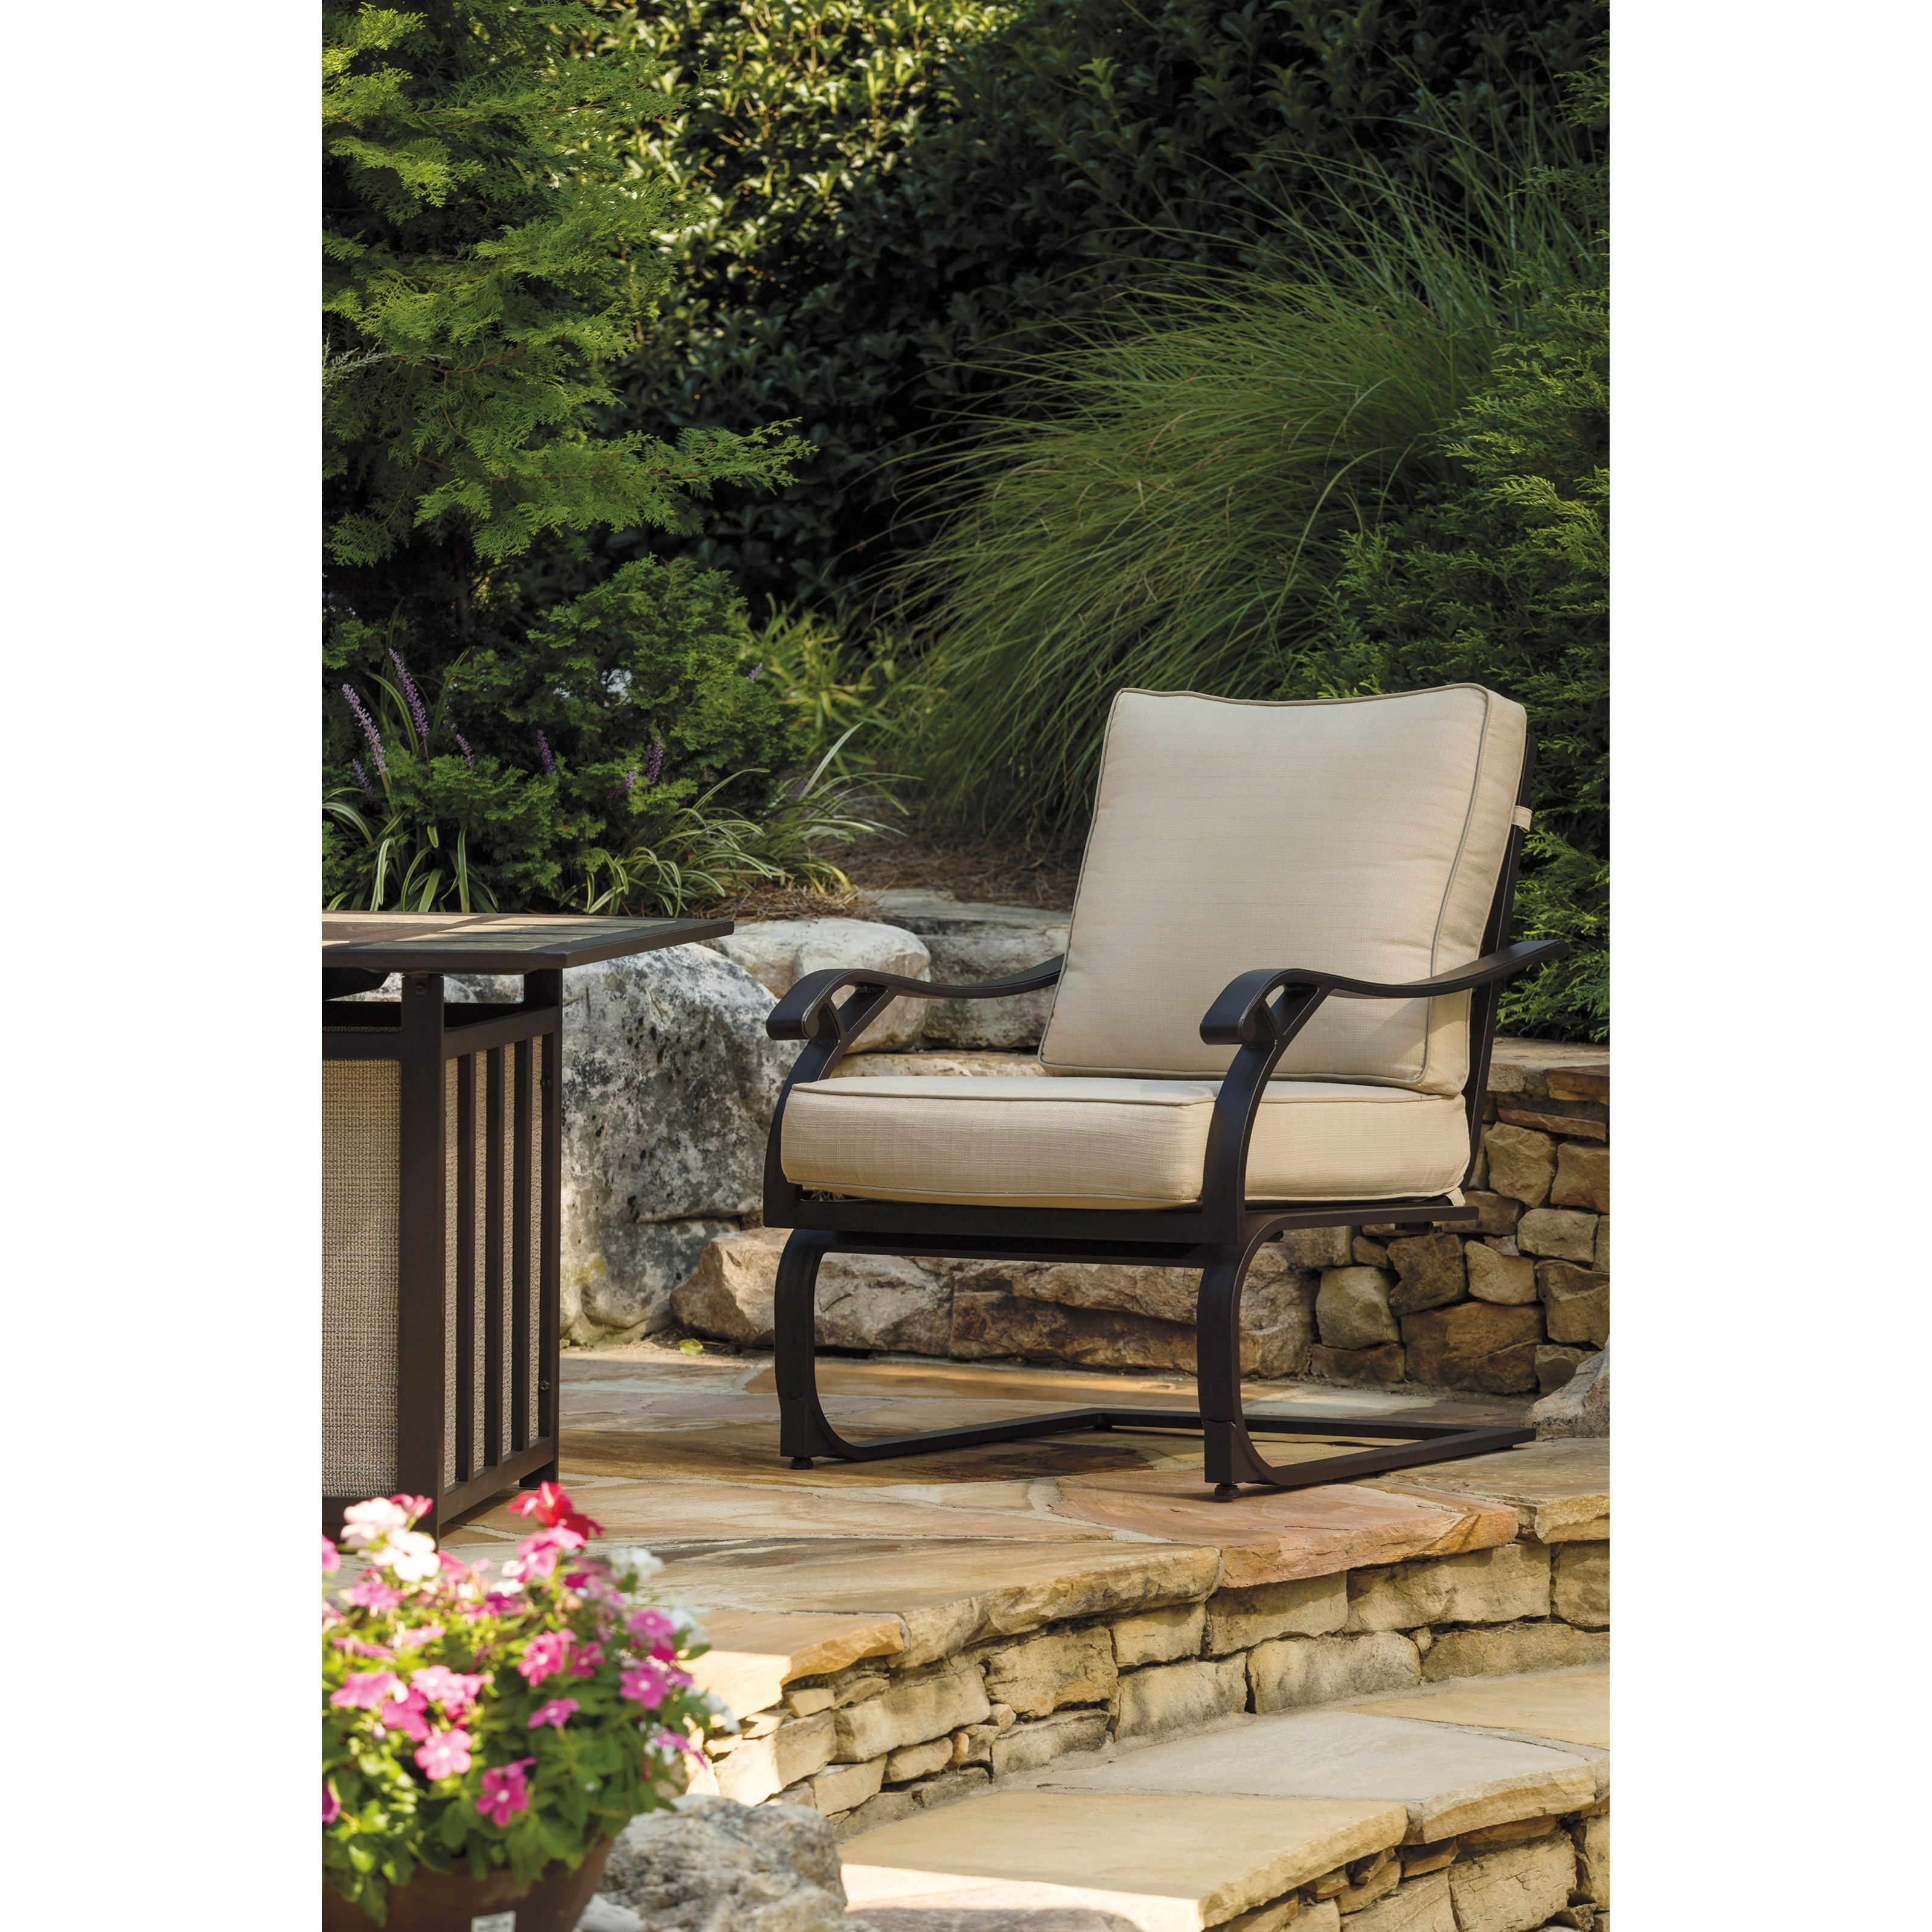 c spring patio chairs aeron chair signature design by ashley wandon p454 860 outdoor